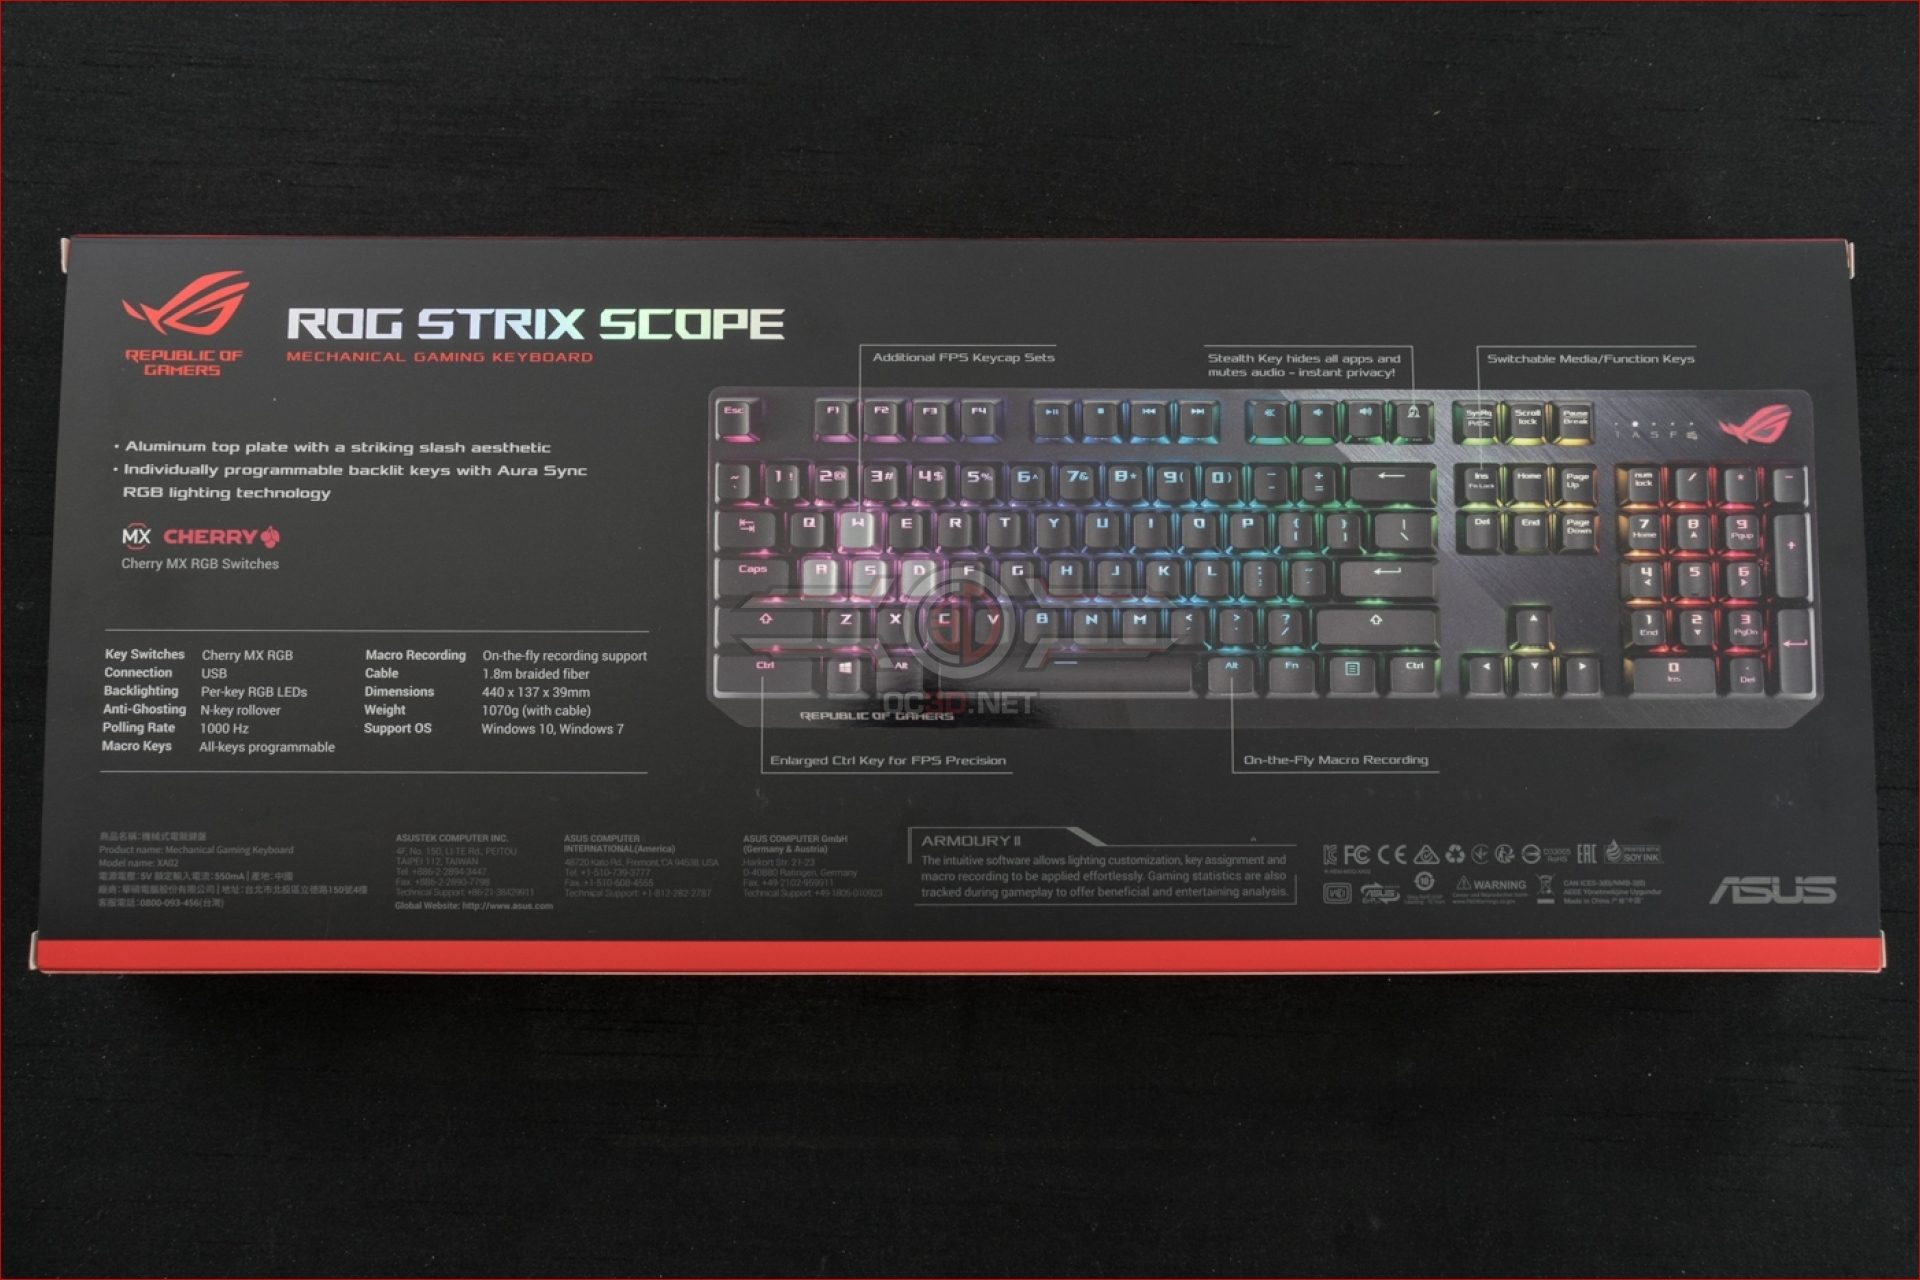 ASUS ROG Strix Scope Gaming Keyboard | Introduction and Packaging